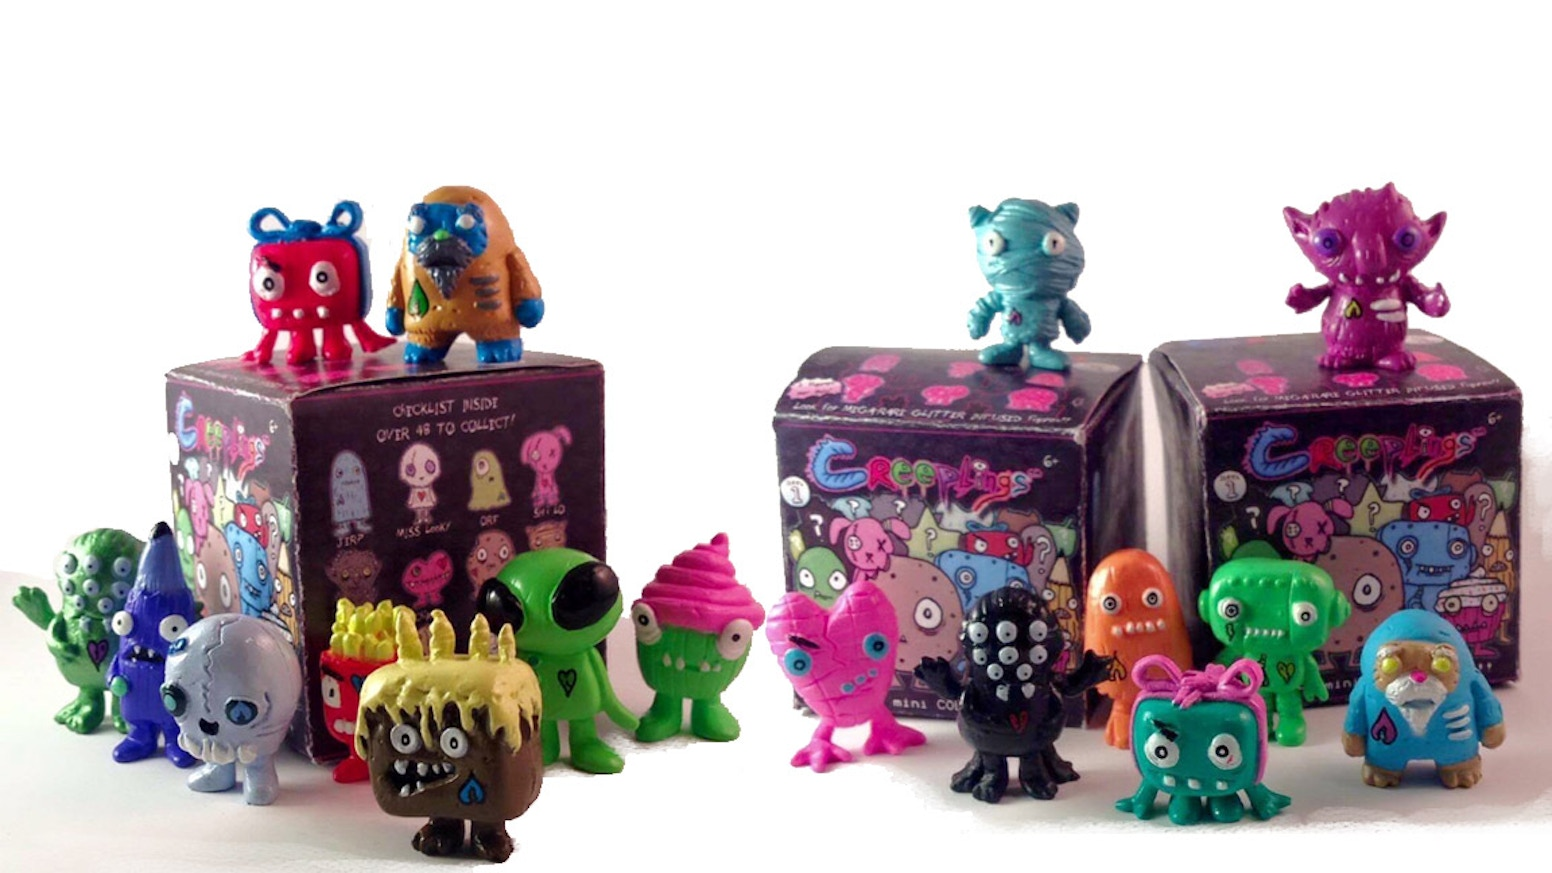 Love the fun of Halloween and want it everyday? Creeplings are a new collectible blind box/bag line of spooky-fun miniatures